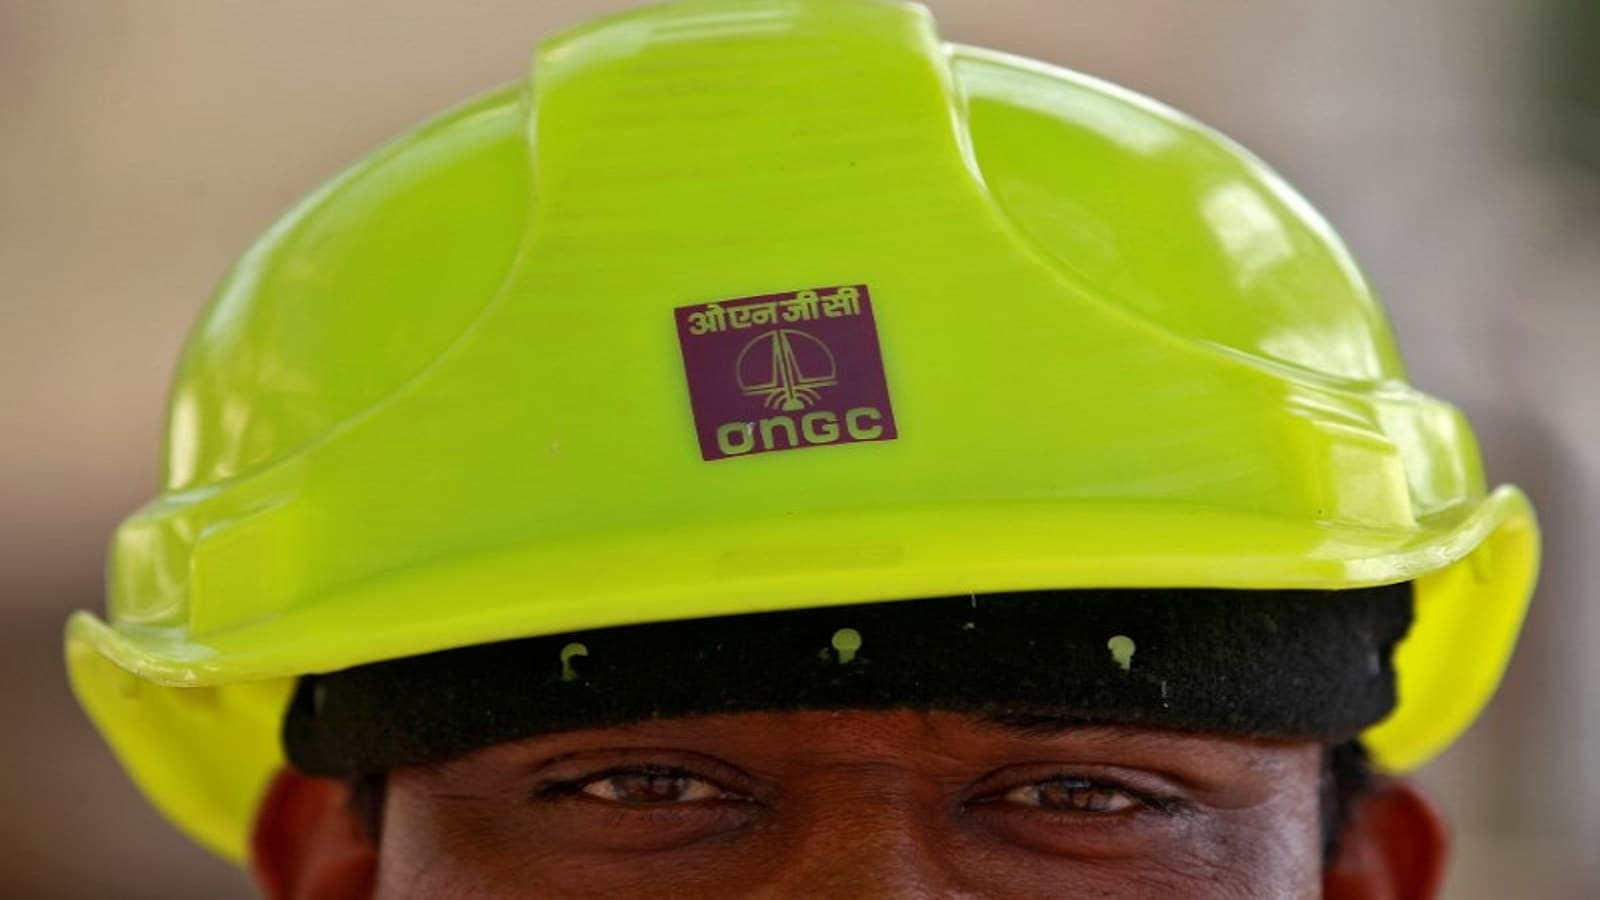 ONGC: The government wants Oil and Natural Gas Corp to sell its golf courses in Ahmedabad and Vadodara in Gujarat, sending the company into a tizzy as one of them has two producing oil wells, sources told PTI. (Image: Reuters)